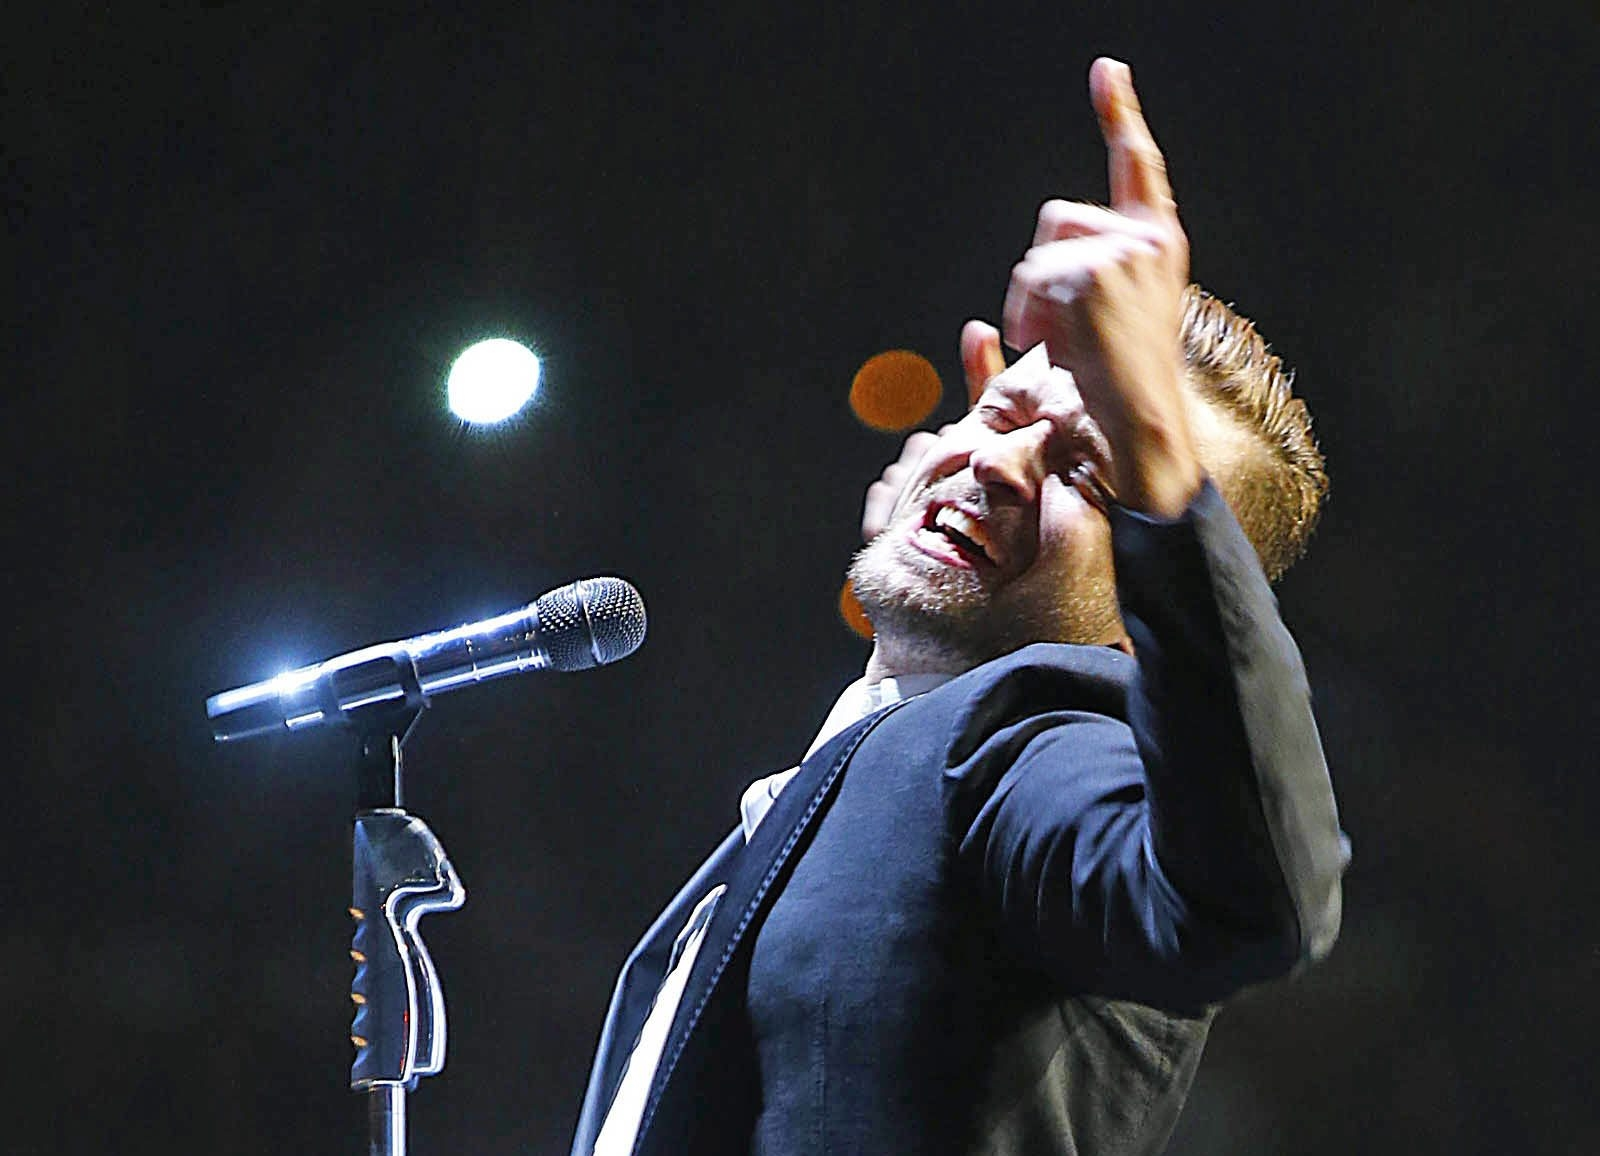 Justin Timberlake performs during a big, bold and musically substantive concert at First Niagara Center on Wednesday.